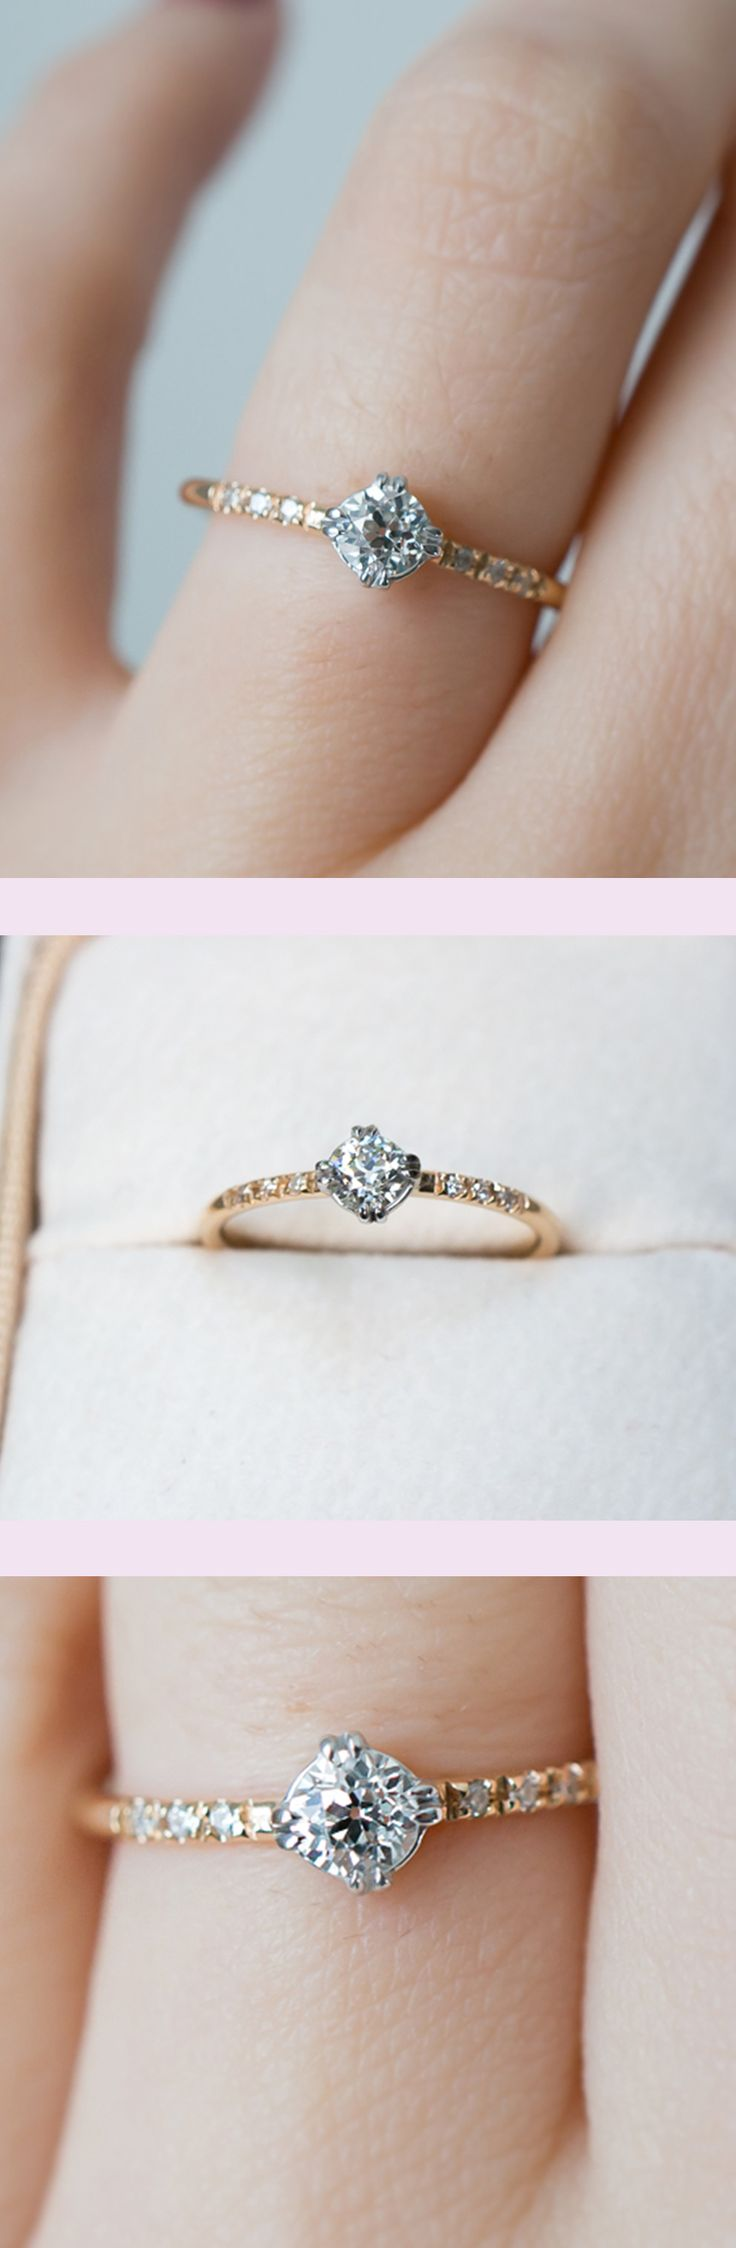 Best 25+ Simple promise rings ideas on Pinterest | Promise rings ...